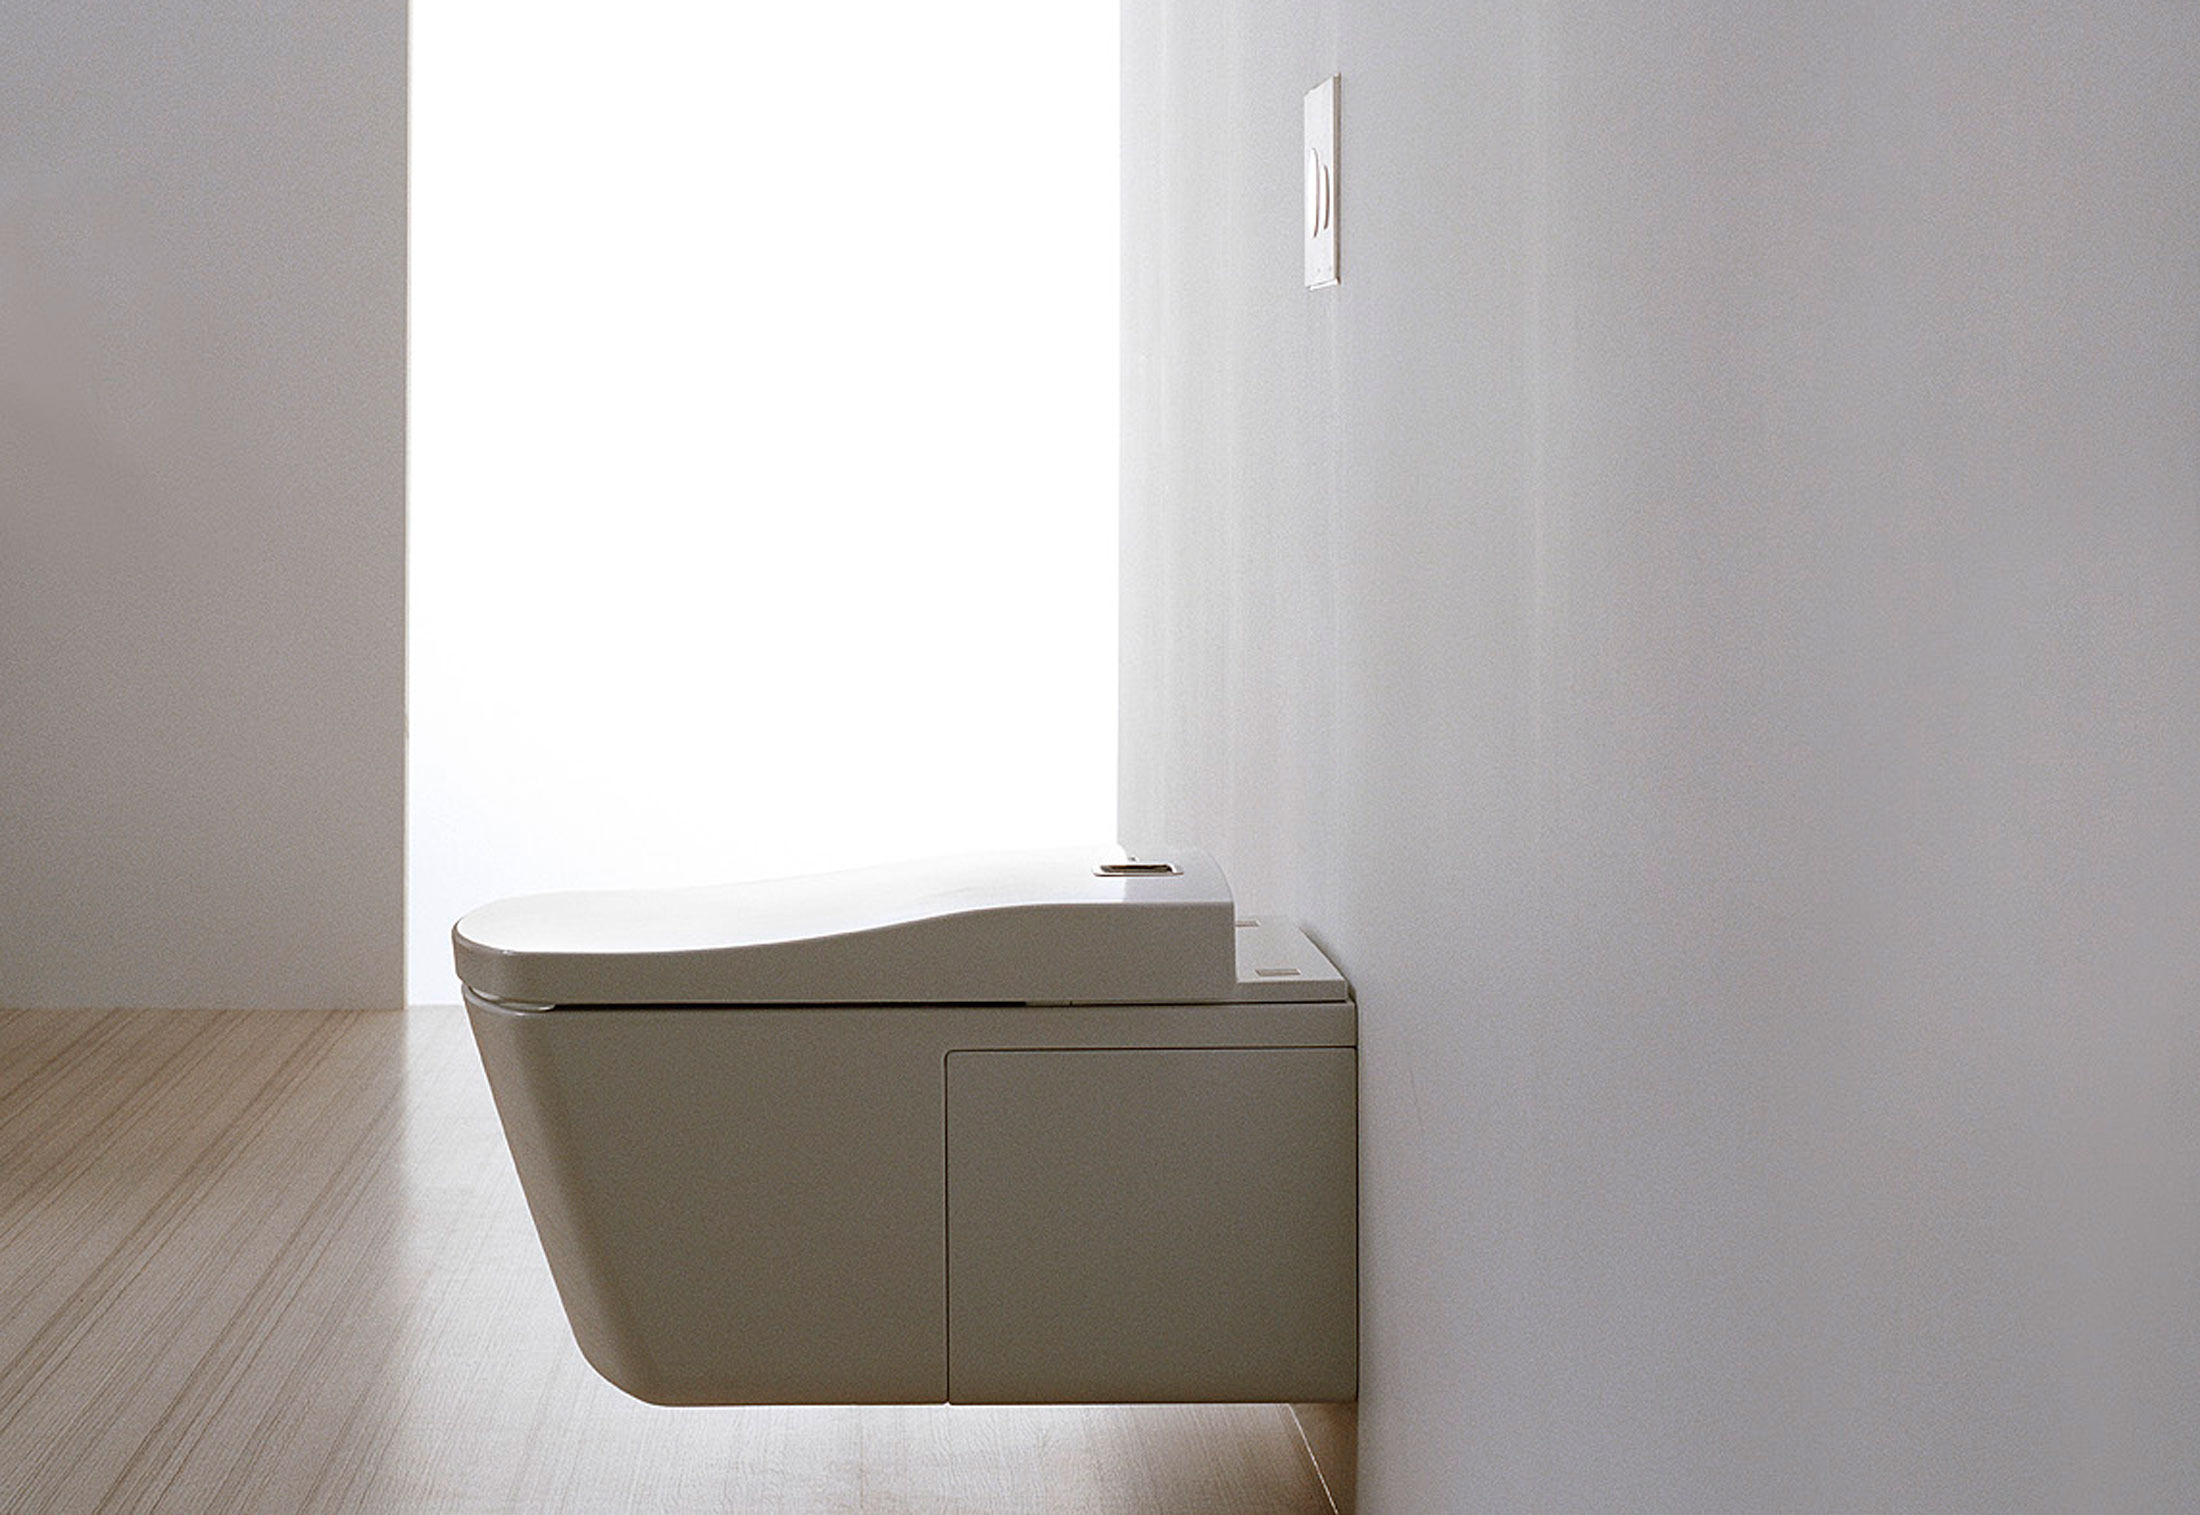 NEOREST Series LE toilet by TOTO toilets design on white wall for toilet decor ideas